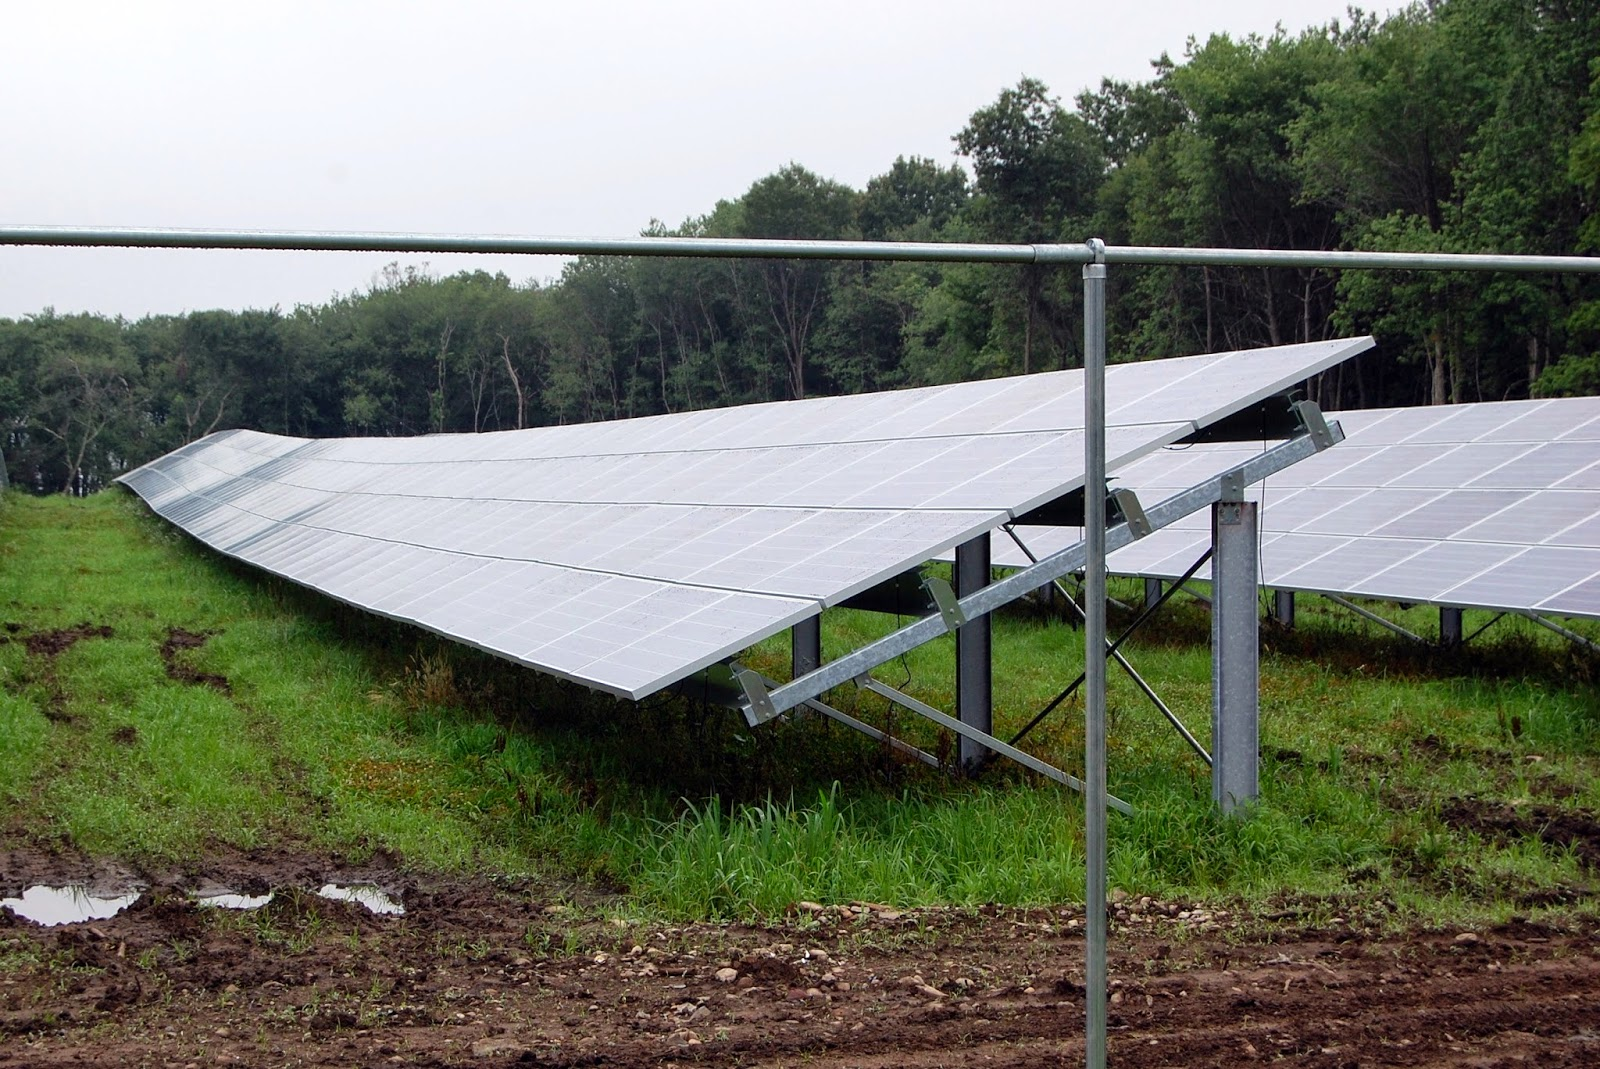 the solar farm at Mt Saint Mary's